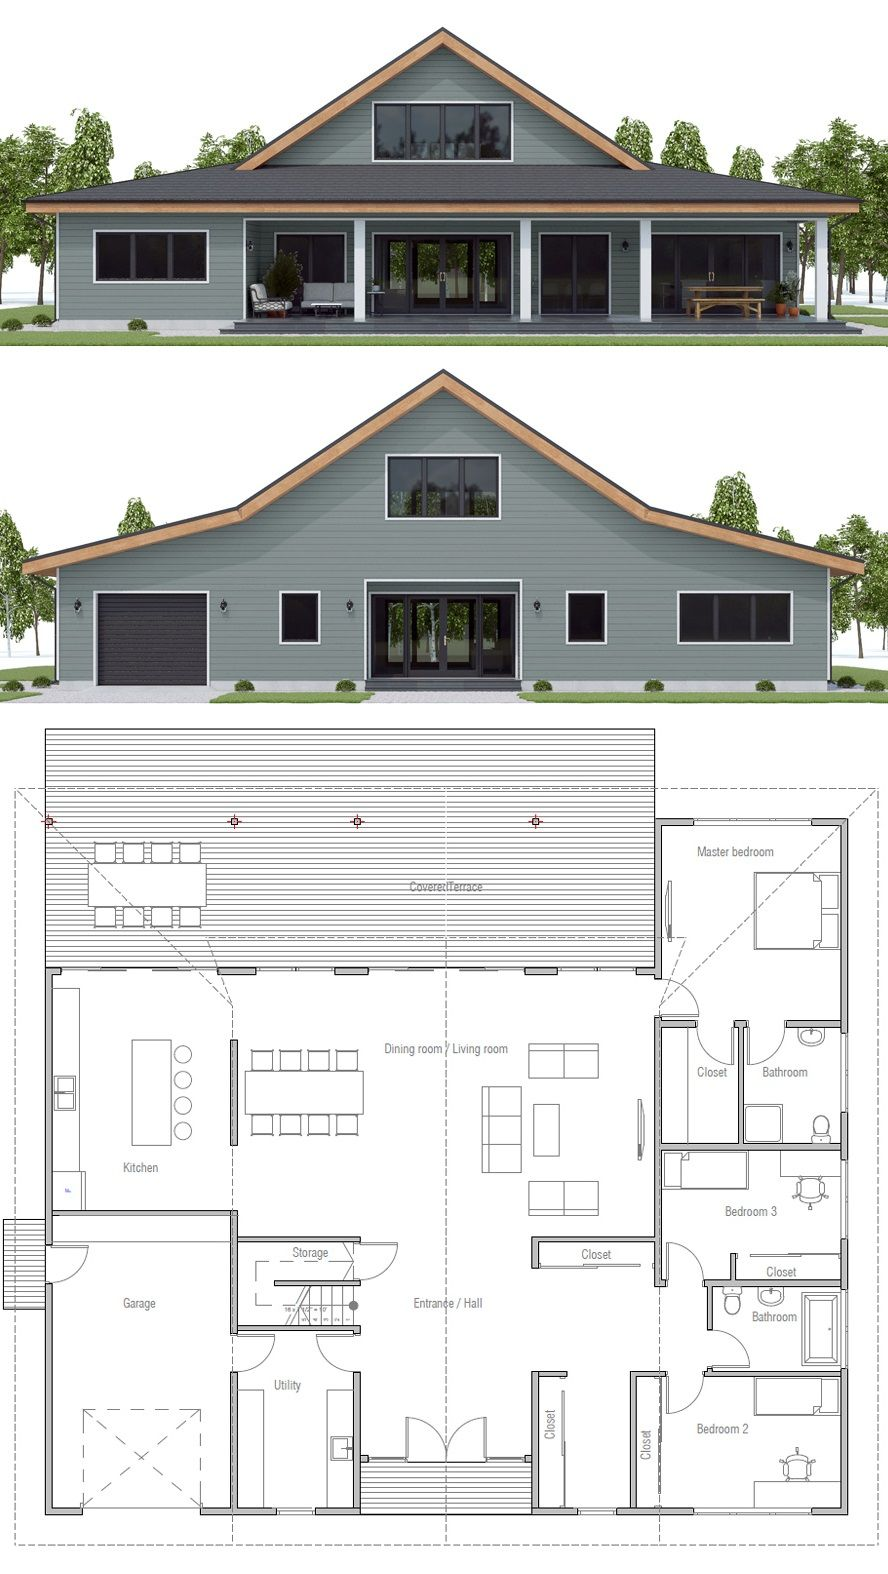 Modern Farmhouse Design Farmhouse Barndominium Homeplans Barn House Plans Barn Style House Barn Homes Floor Plans